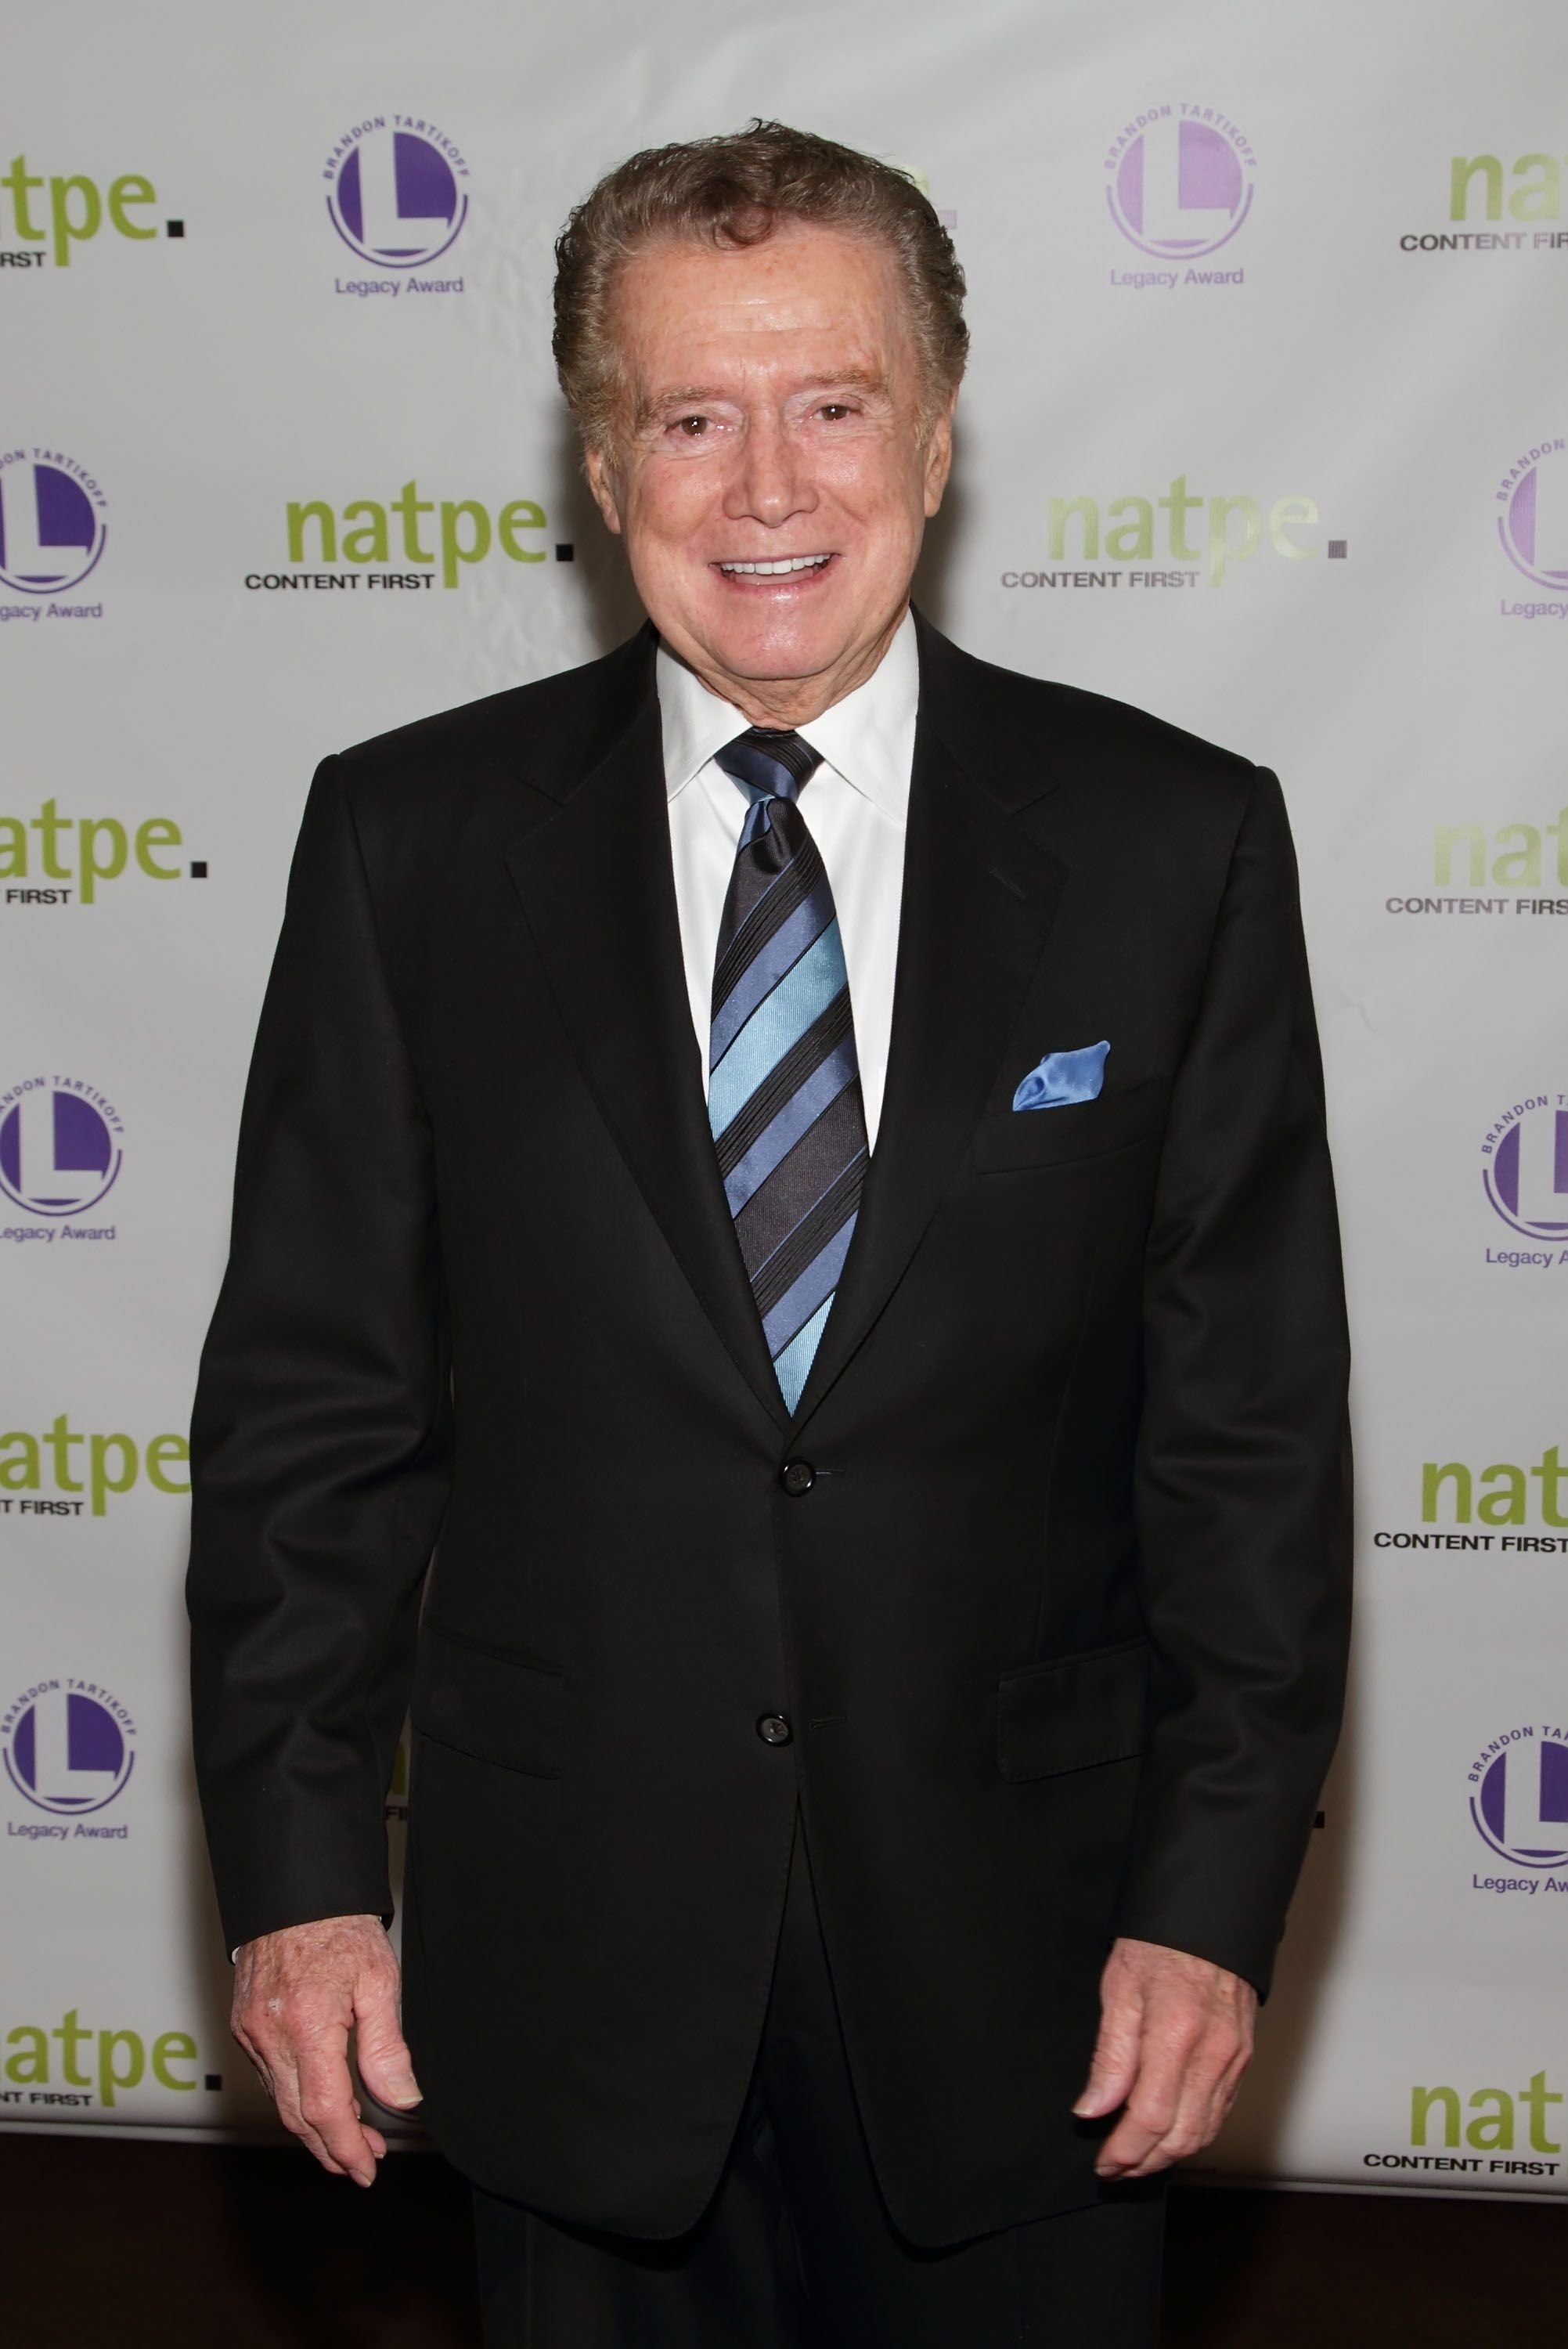 Television host Regis Philbin a the 8th Annual NATPE Brandon Tartikoff Legacy Awards at Fontainebleau Miami Beach on January 25, 2011 | Photo: Getty Images